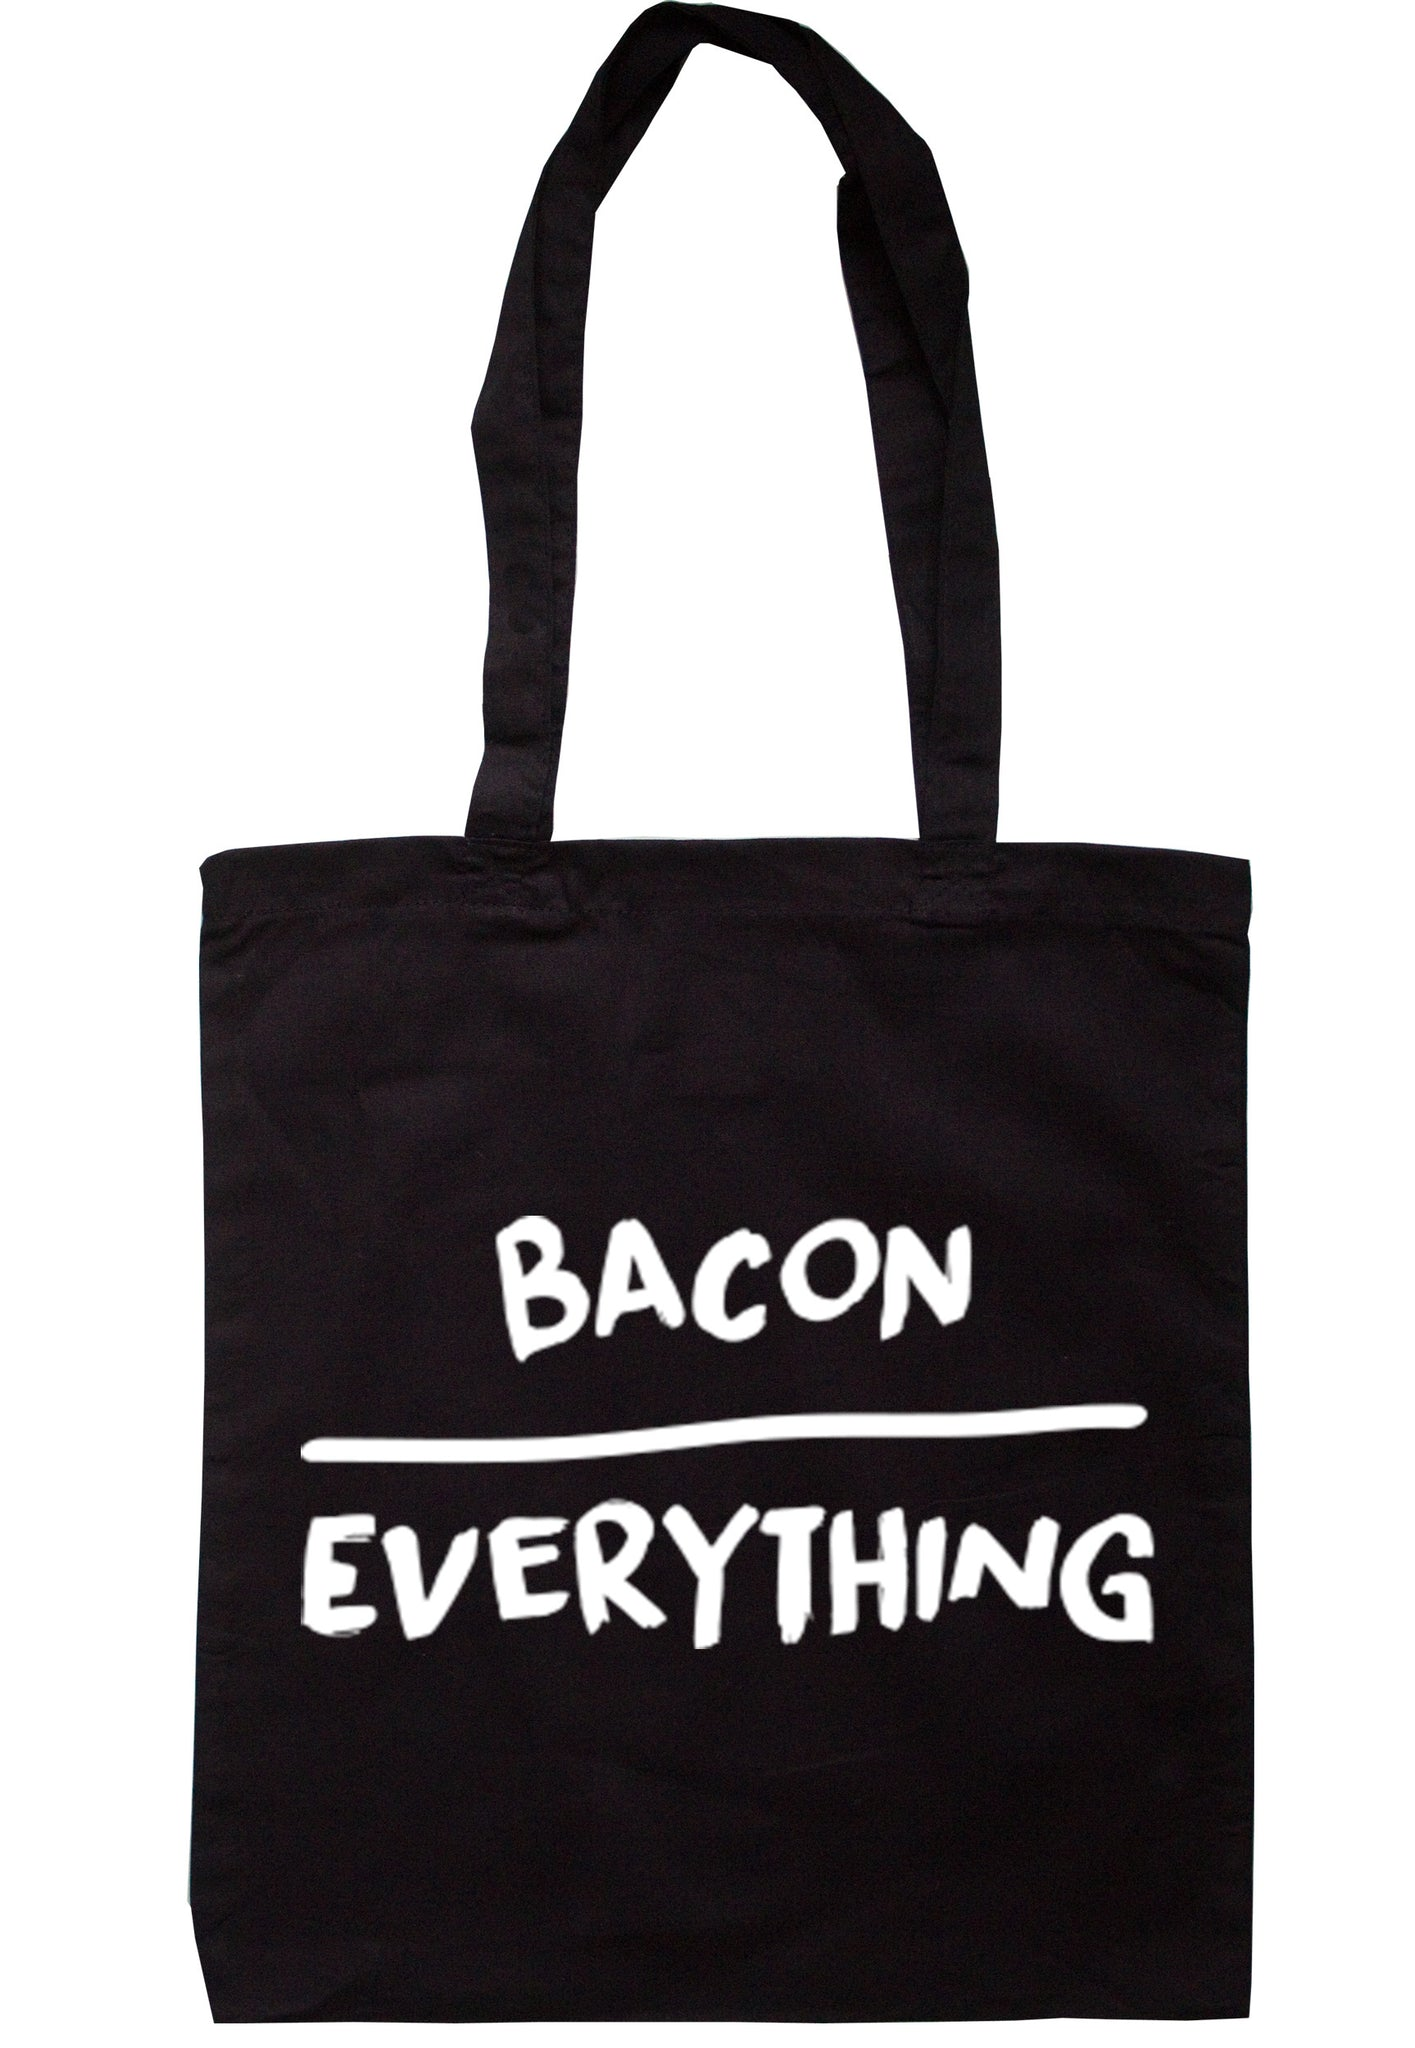 Bacon Over Everything Tote Bag TB0116